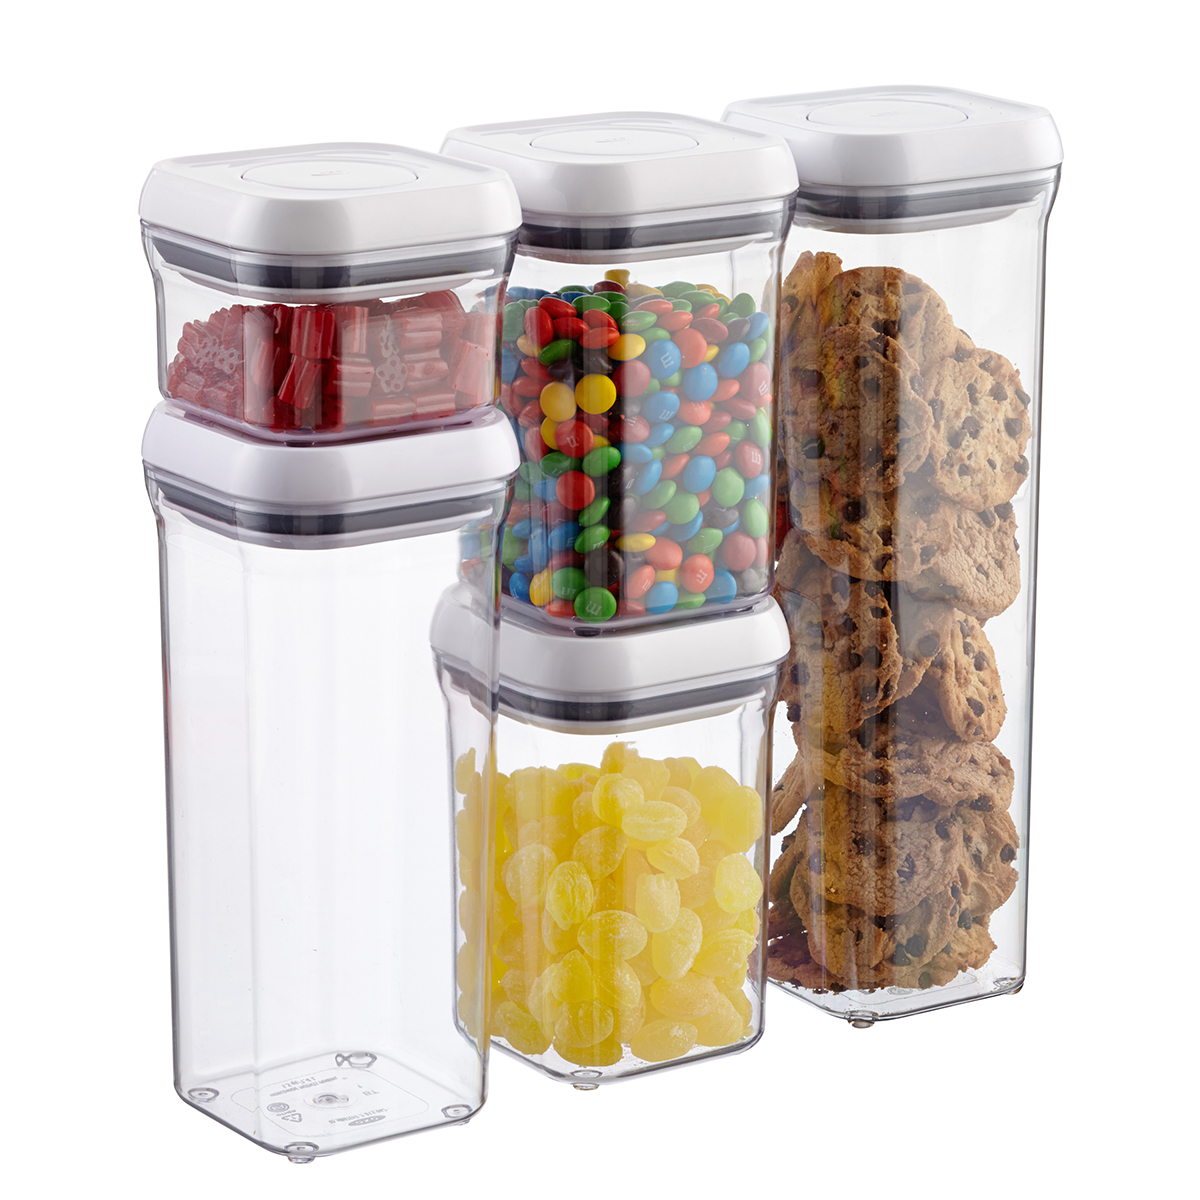 Merveilleux OXO Good Grips 5 Piece POP Canister Set